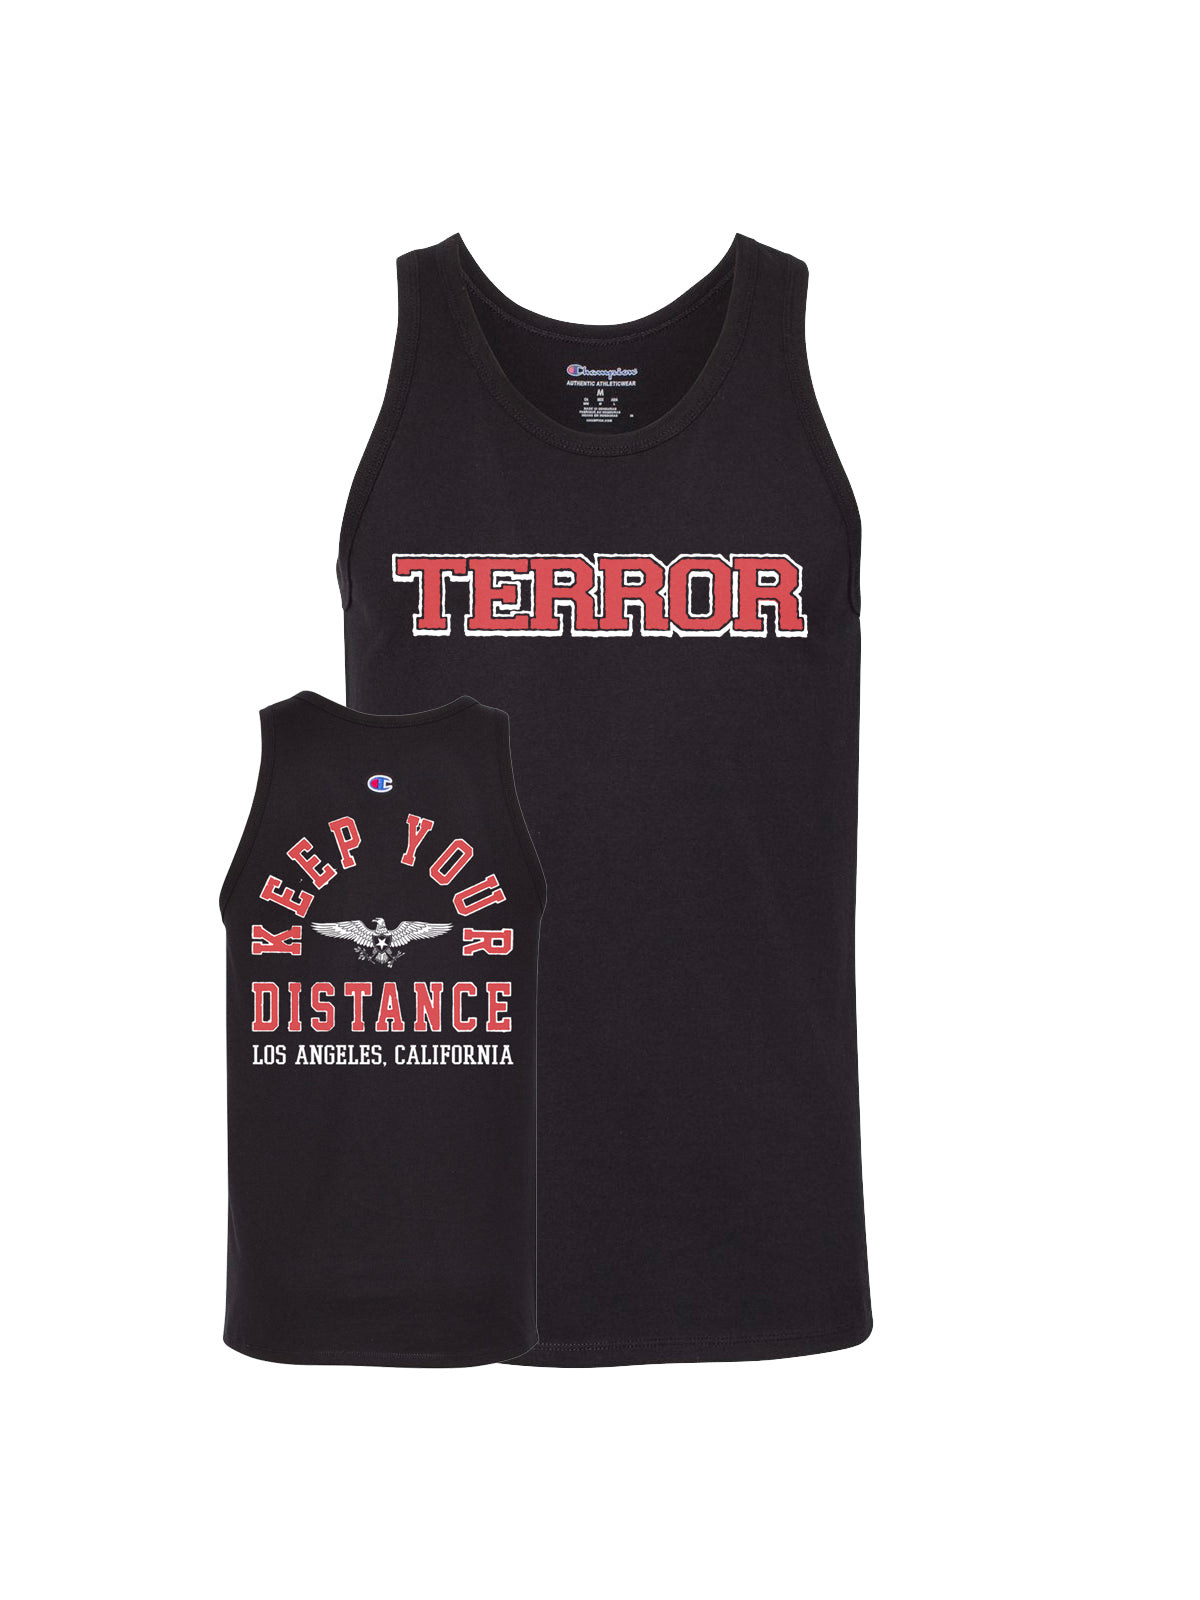 Terror - Keep Your Distance Tank Top - SHIPS AUGUST 24